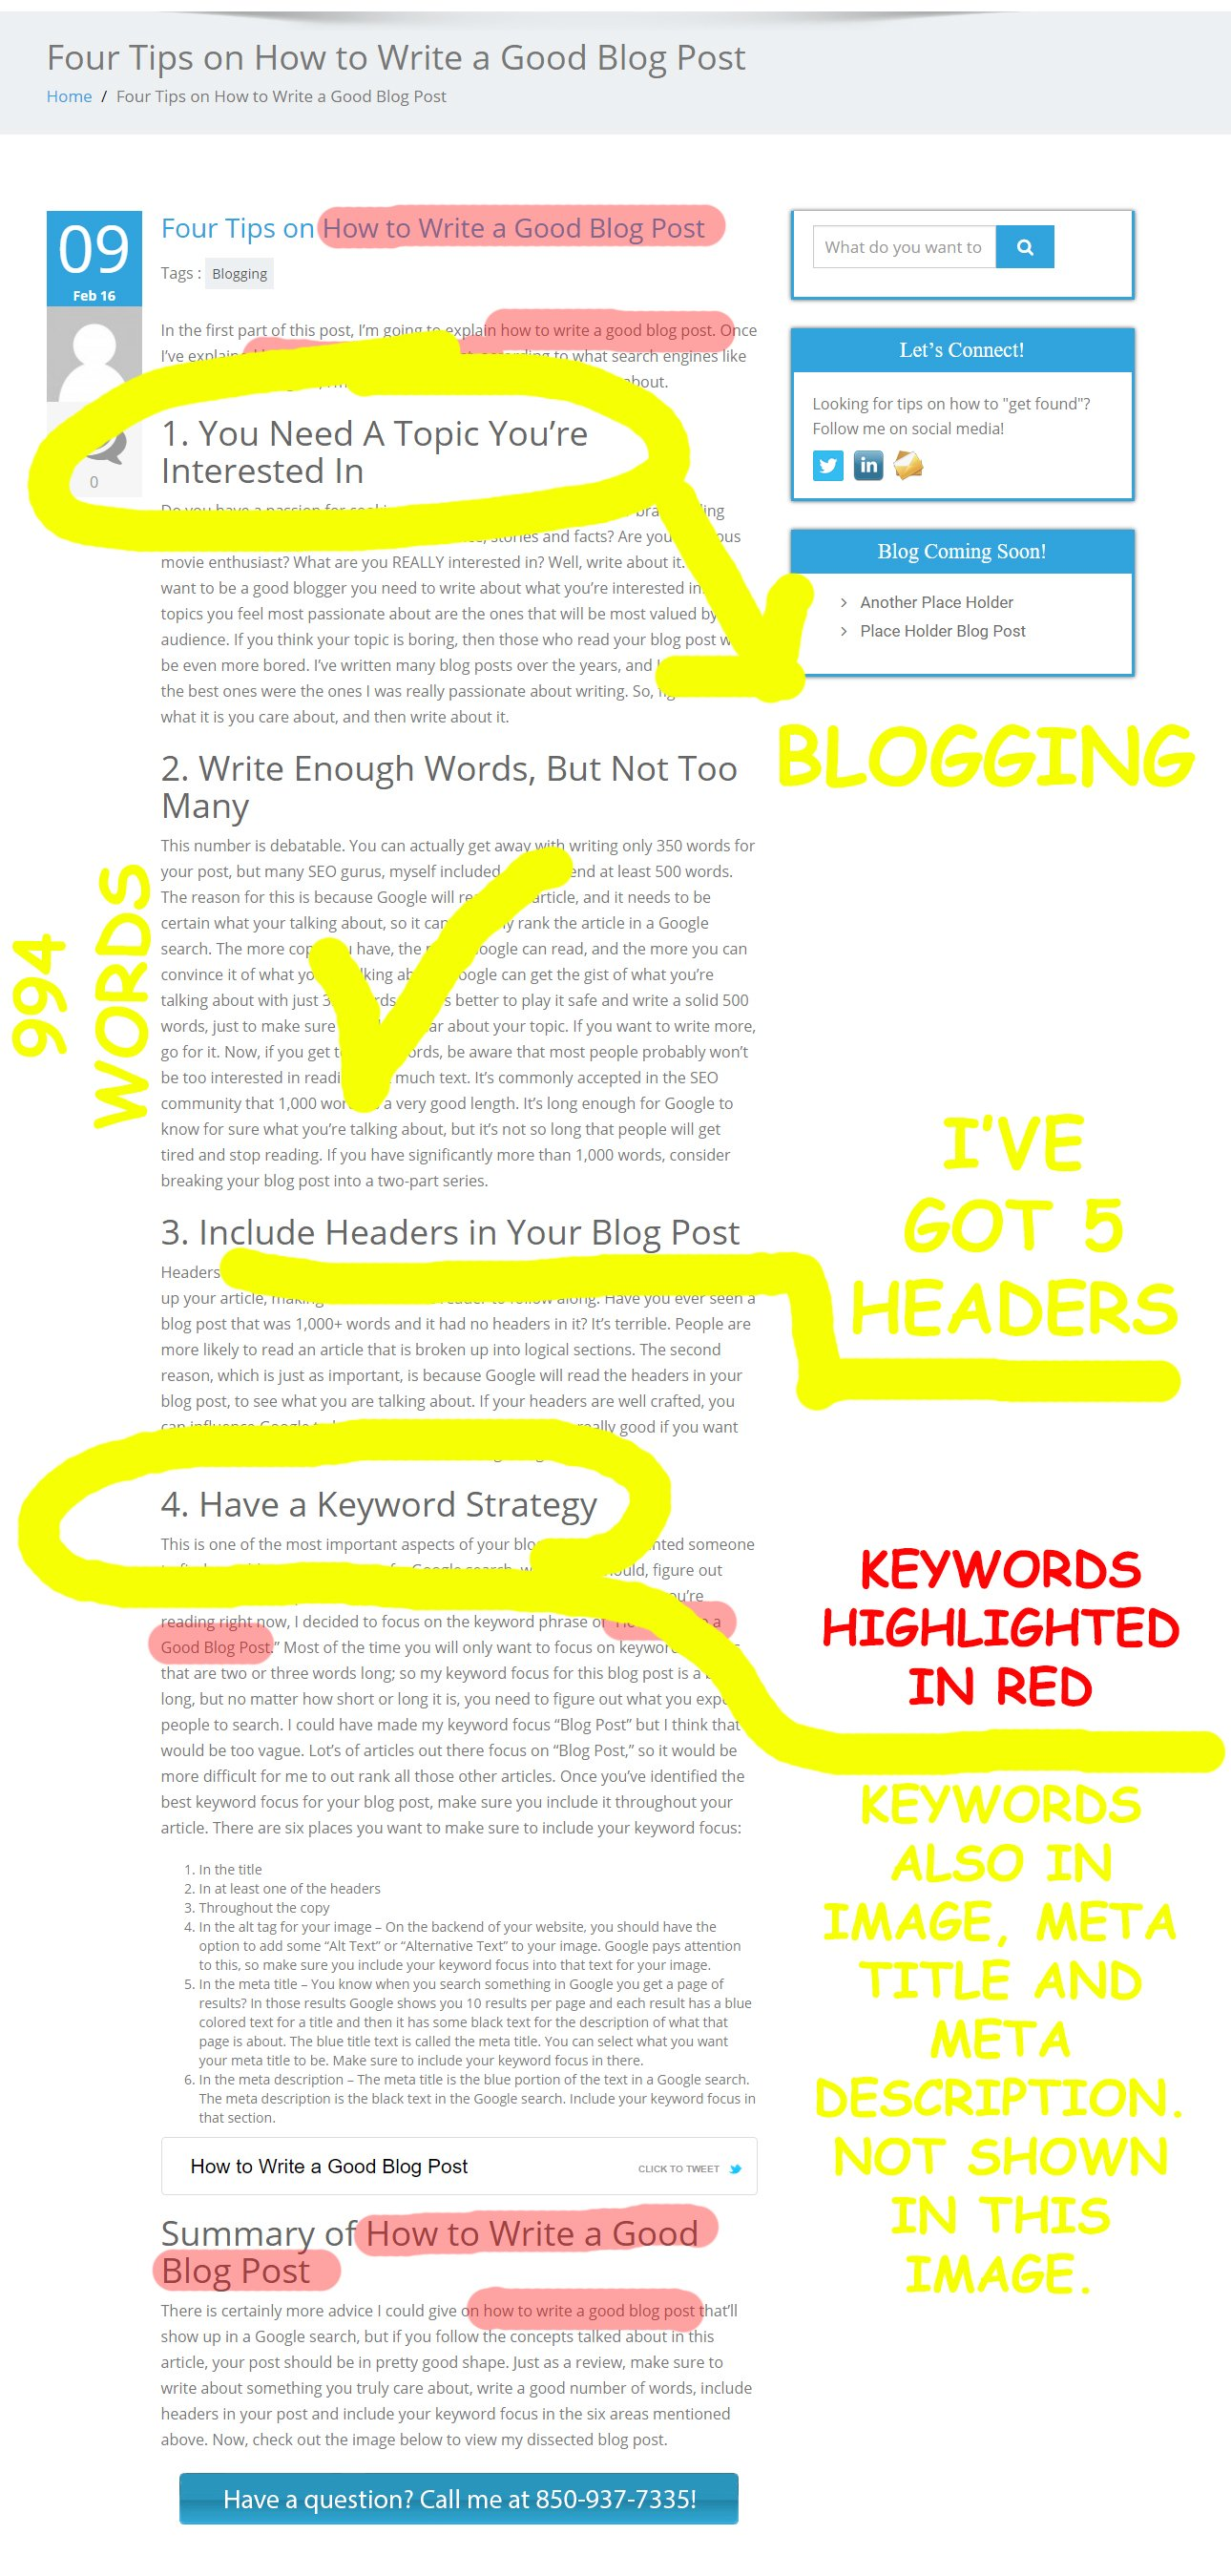 Image showing how to write a good blog post